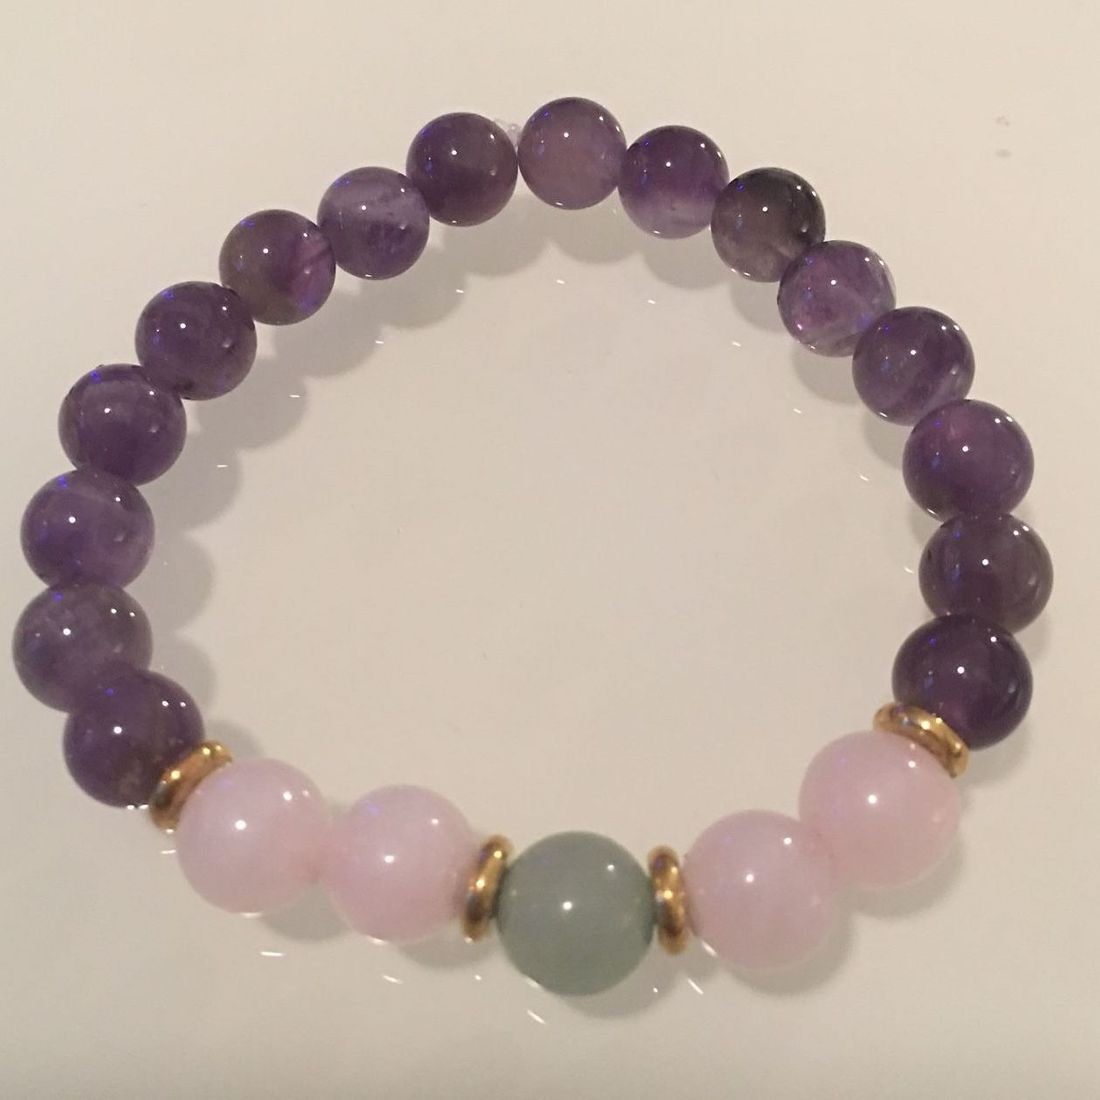 Positively Stoned: Amethyst, Jade, Rose Quartz